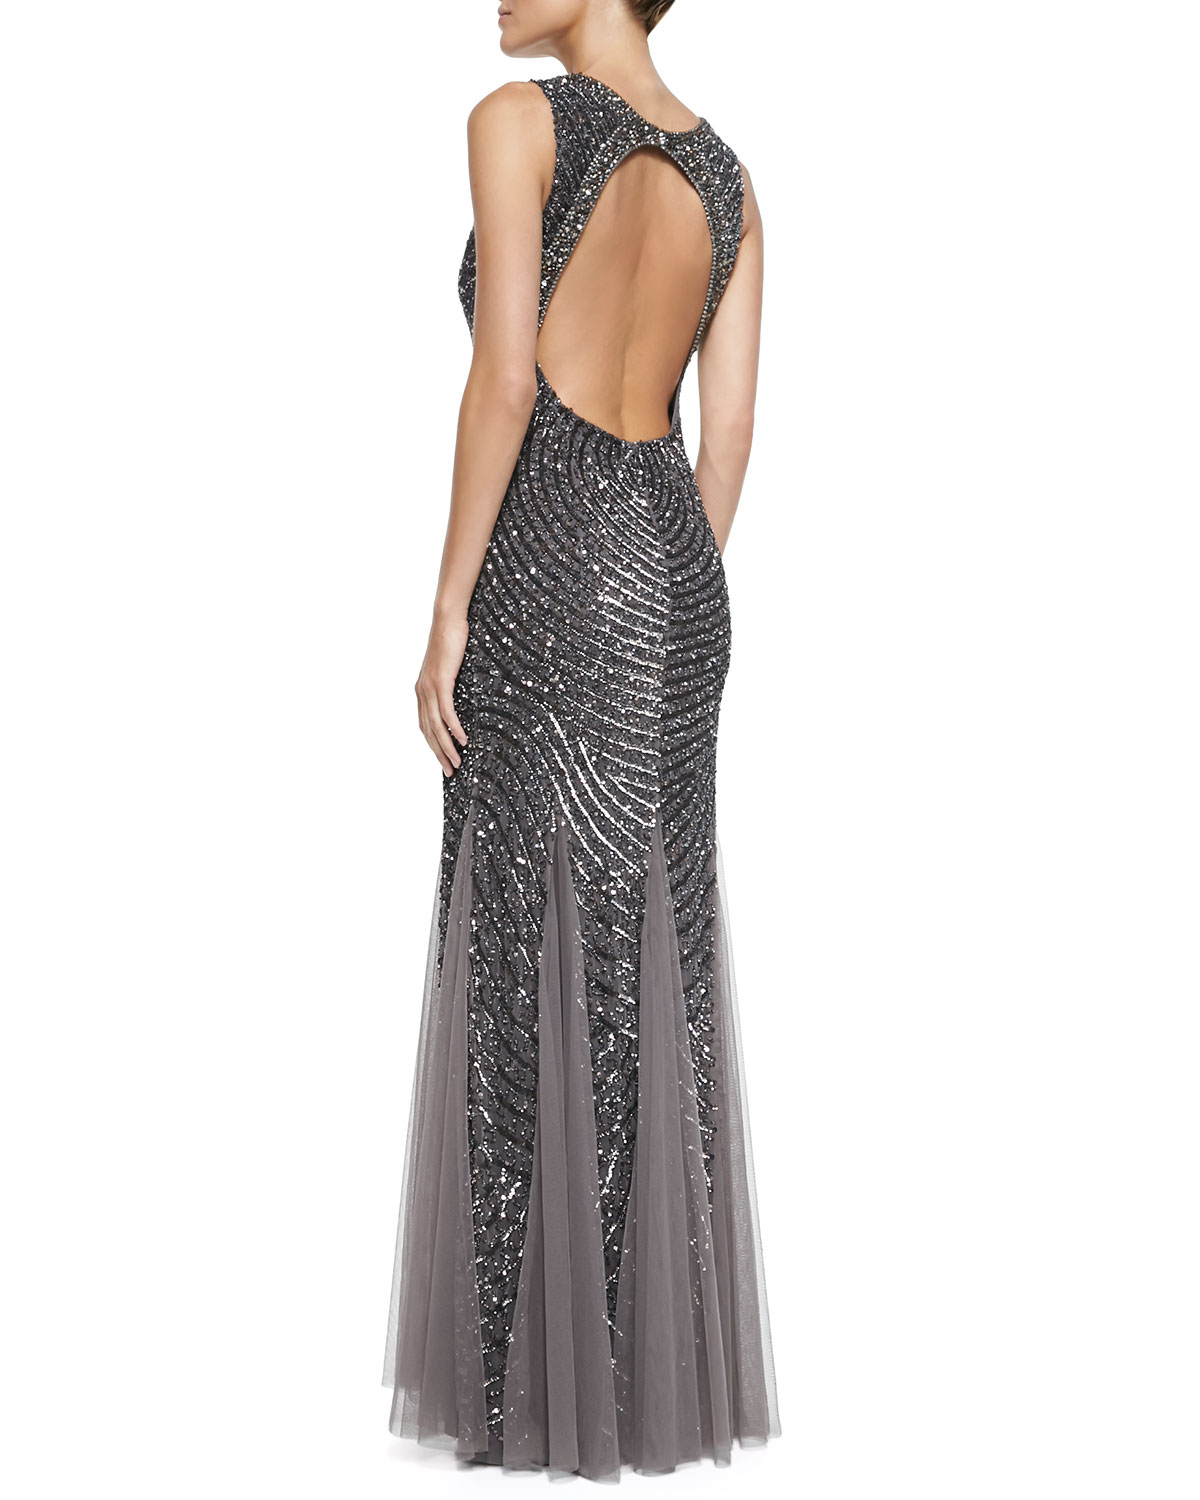 Lyst - Aidan Mattox Sleeveless Beaded Gown W/ Cutout Back in Gray